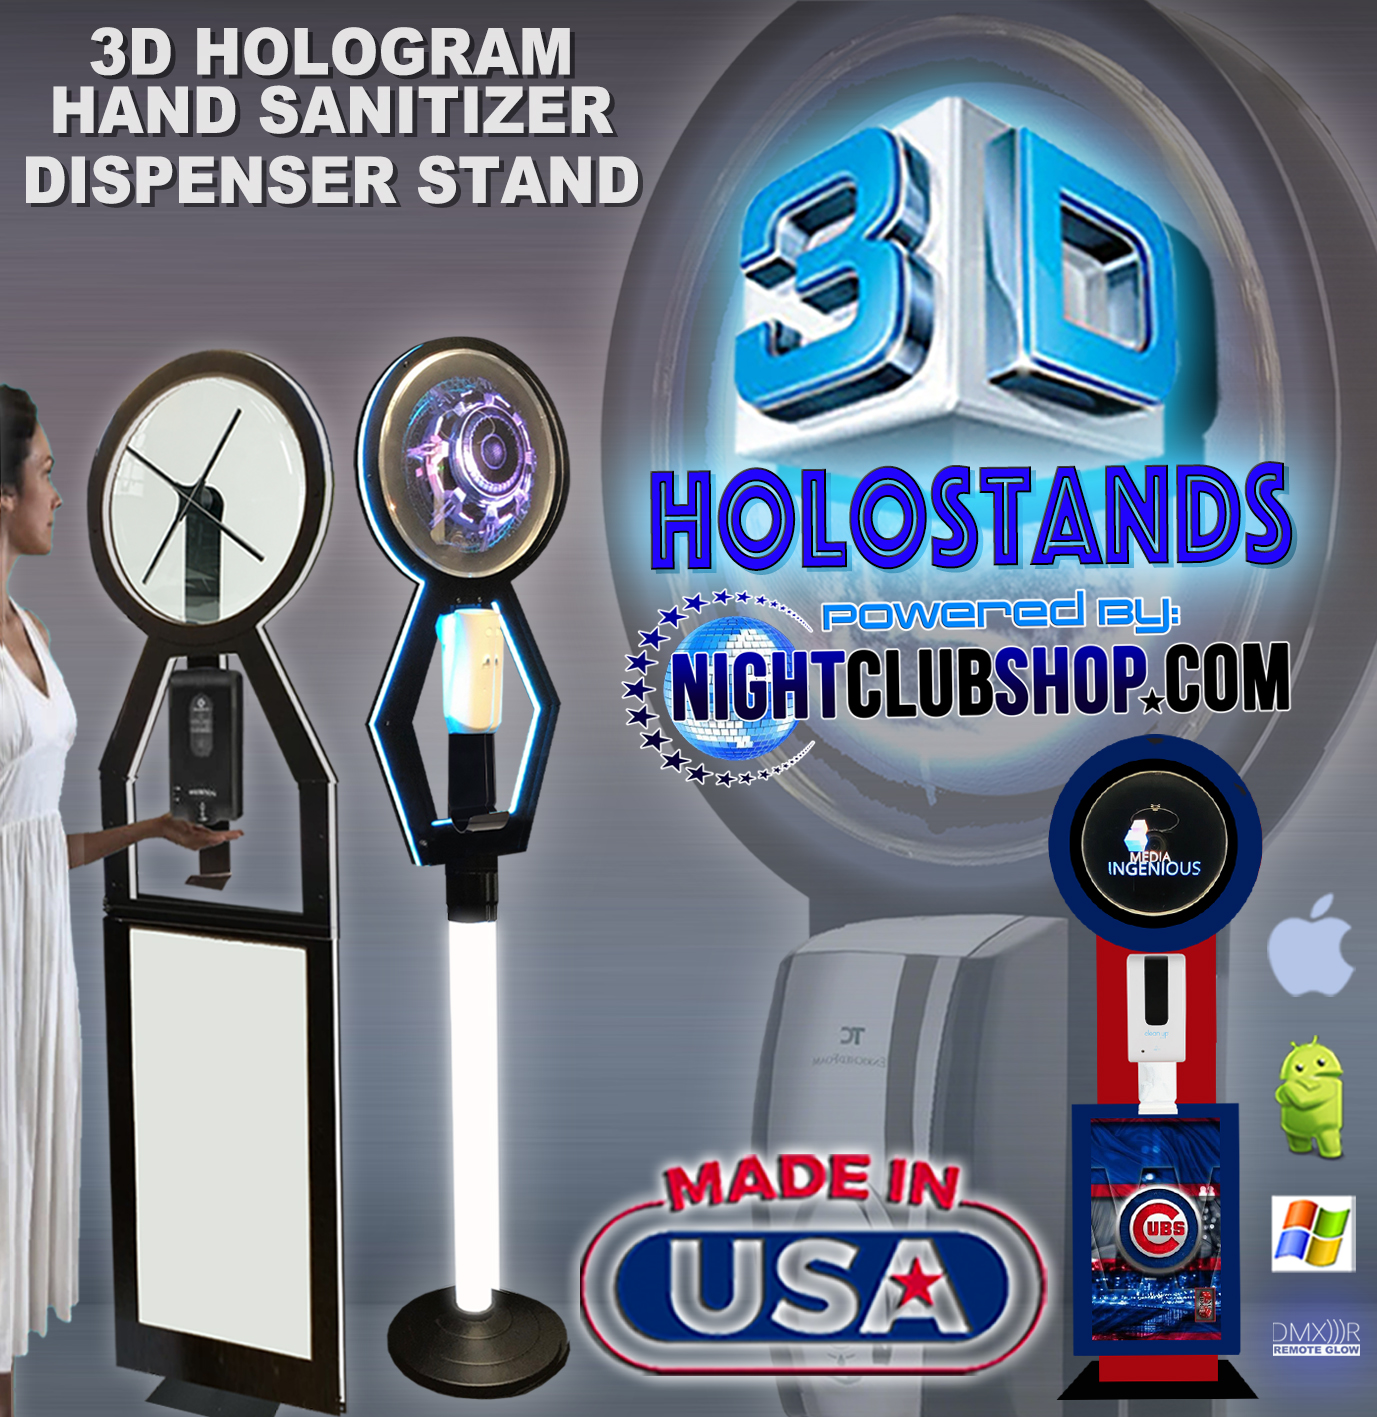 made-in-usa-led-hand-sanitizer-auto-dispenser-stand-stands-sanitation-station-13.jpg